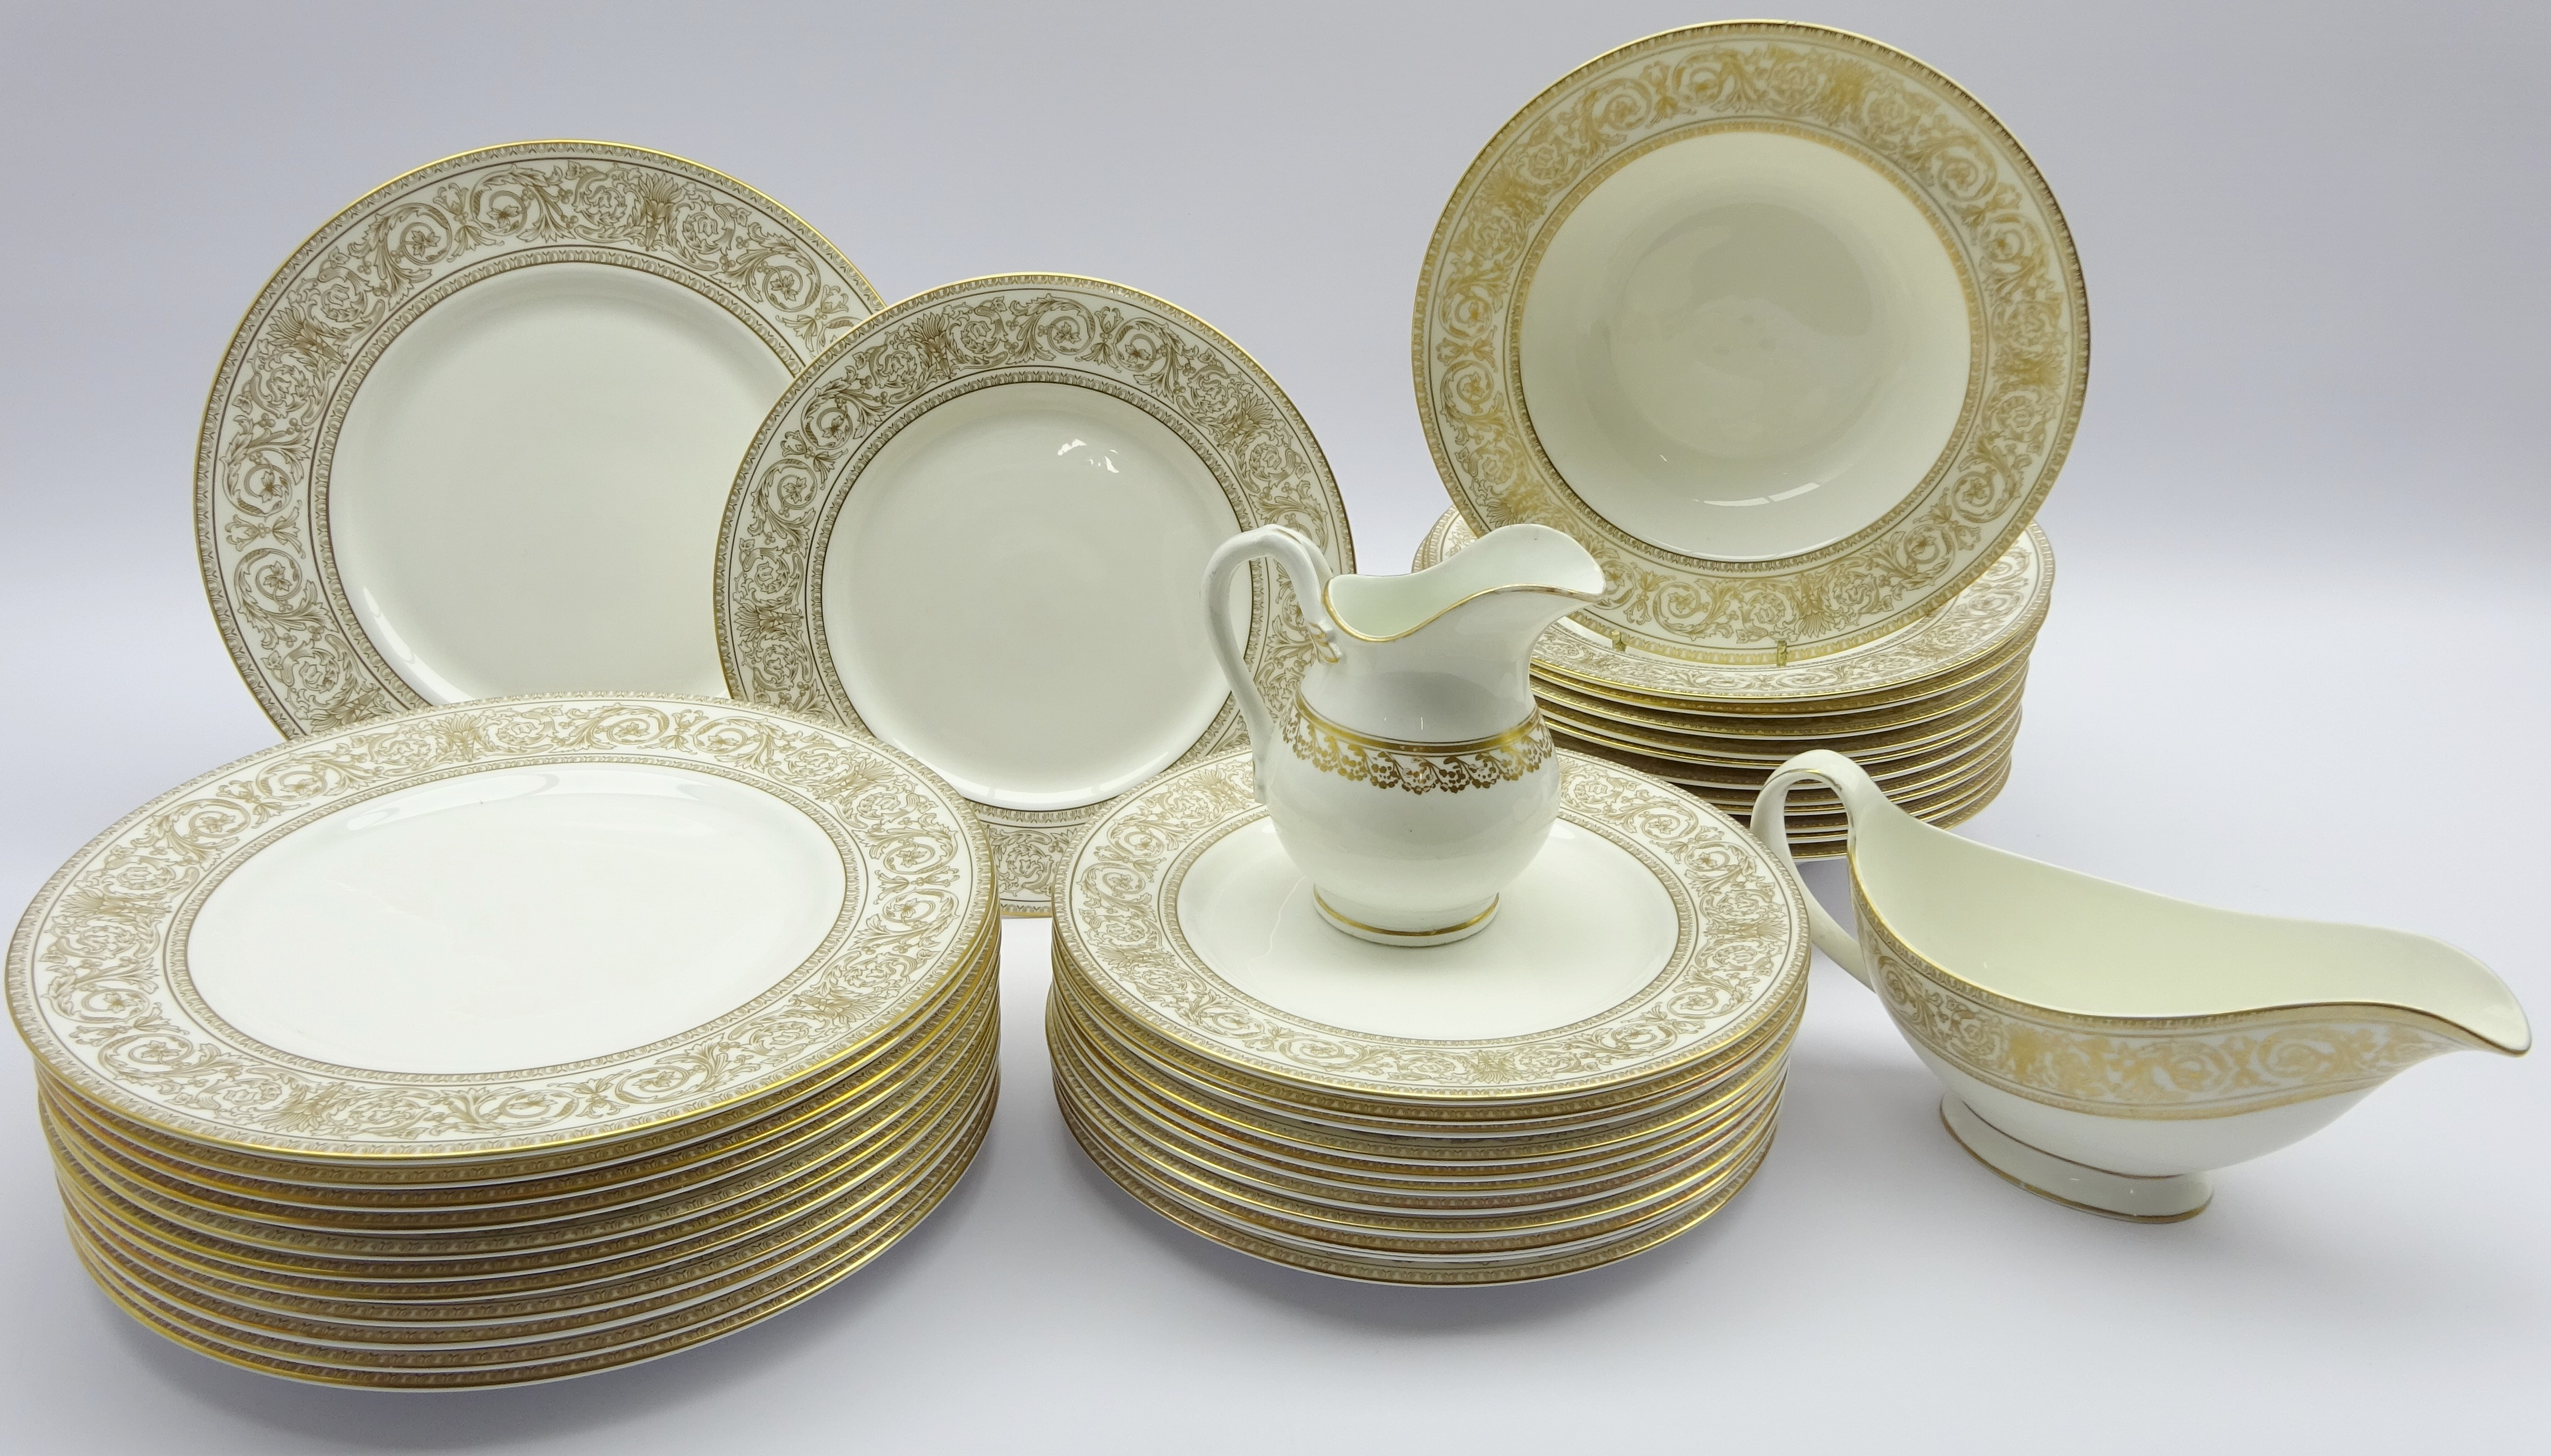 Lot 46 - Royal Doulton 'Sovereign' pattern dinner service comprising twelve dinner plates,